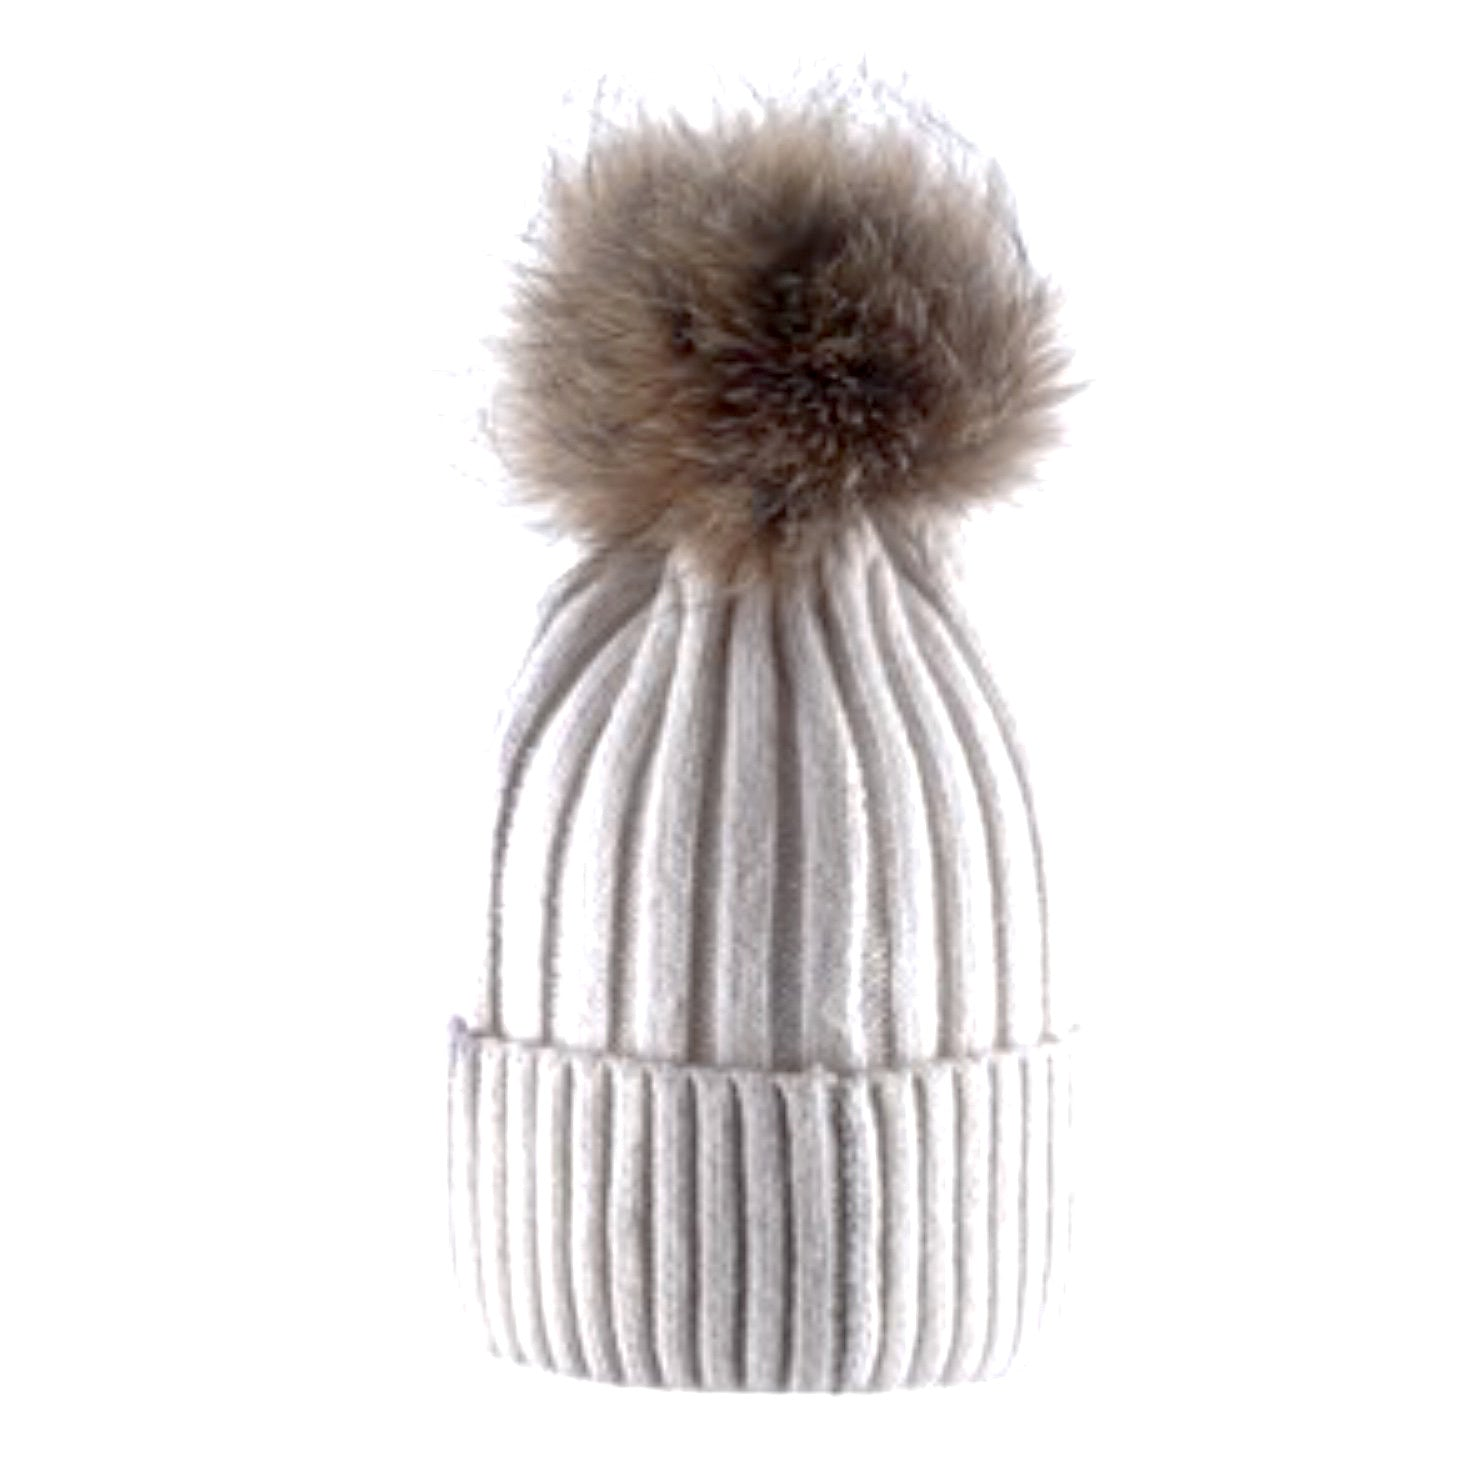 Ivory Wool Hat with Racoon Fur Pom Pom